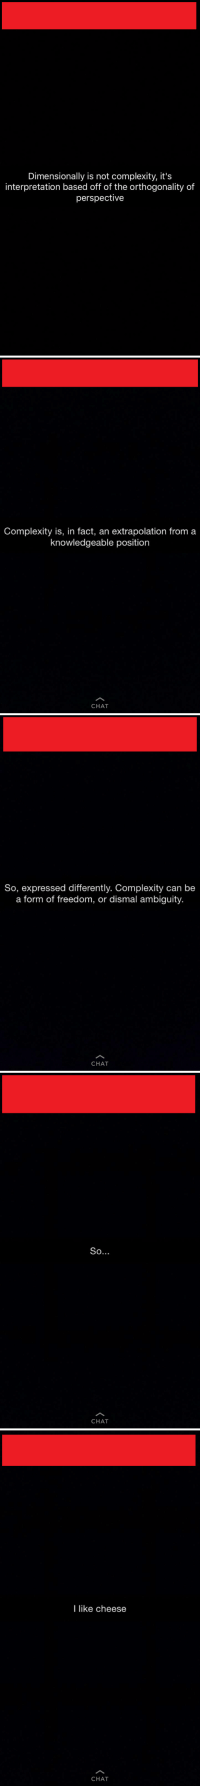 Taken from the Snapchat story of a guy I know. It was painful to read.: Dimensionally is not complexity, it's  interpretation based off of the orthogonality of  perspective   Complexity is, in fact, an extrapolation from a  knowledgeable position  CHAT   So, expressed differently. Complexity can be  a form of freedom, or dismal ambiguity.  CHAT   So  CHAT   I like cheese  CHAT Taken from the Snapchat story of a guy I know. It was painful to read.